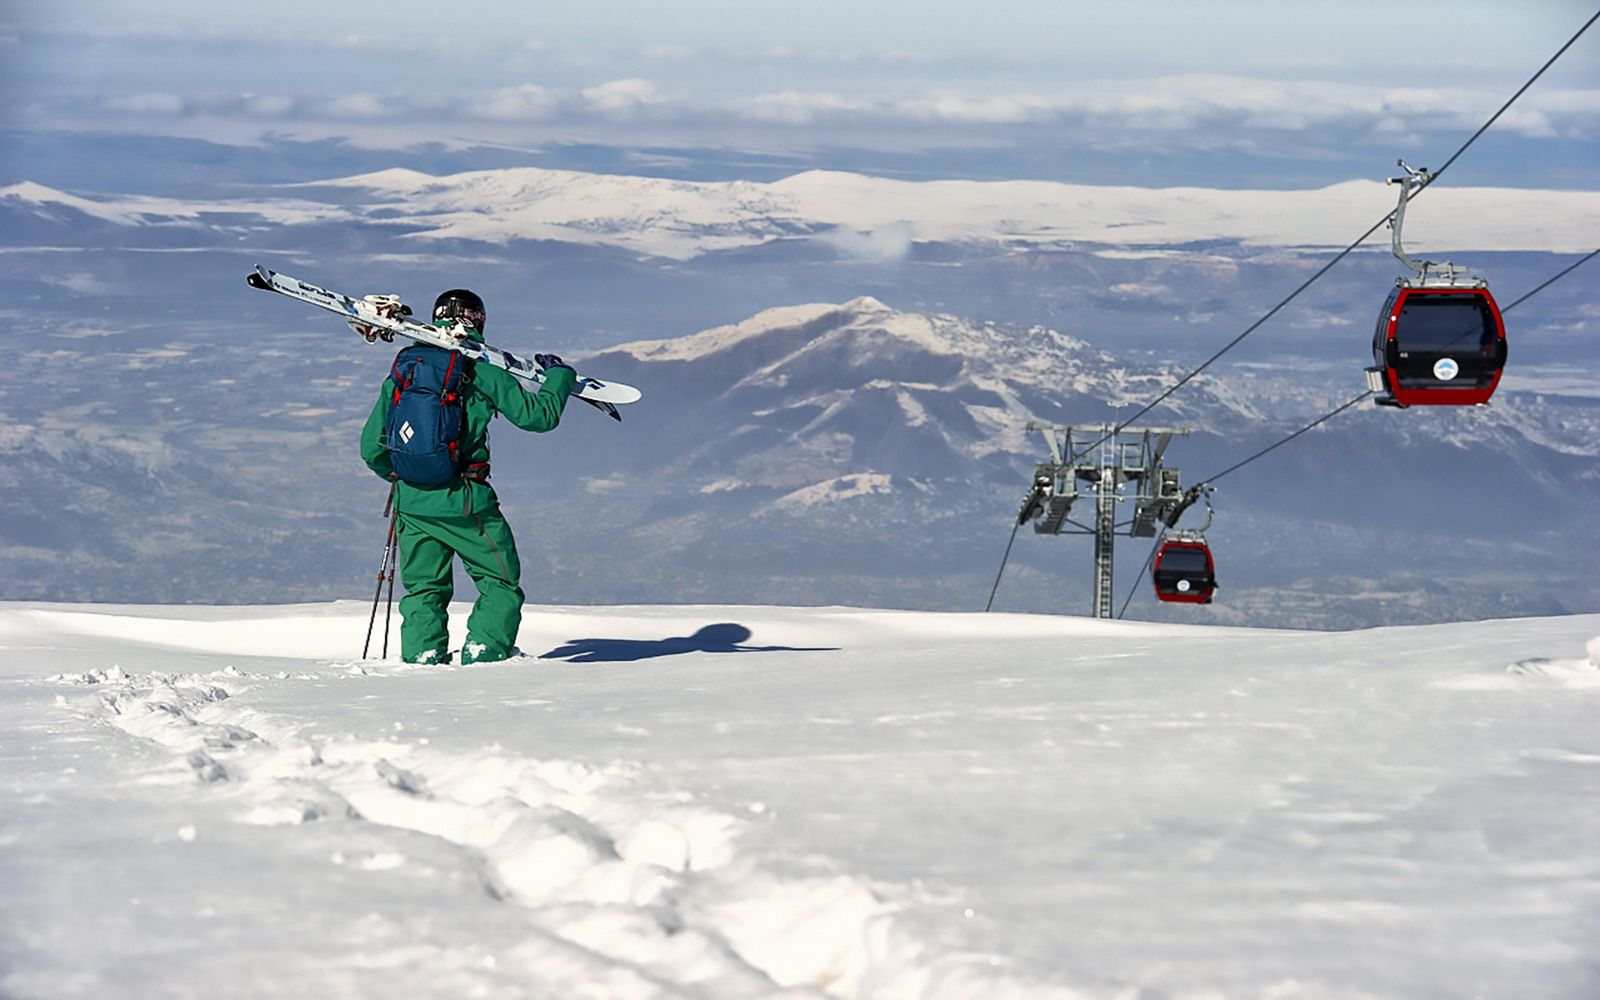 Erciyes Ski Center